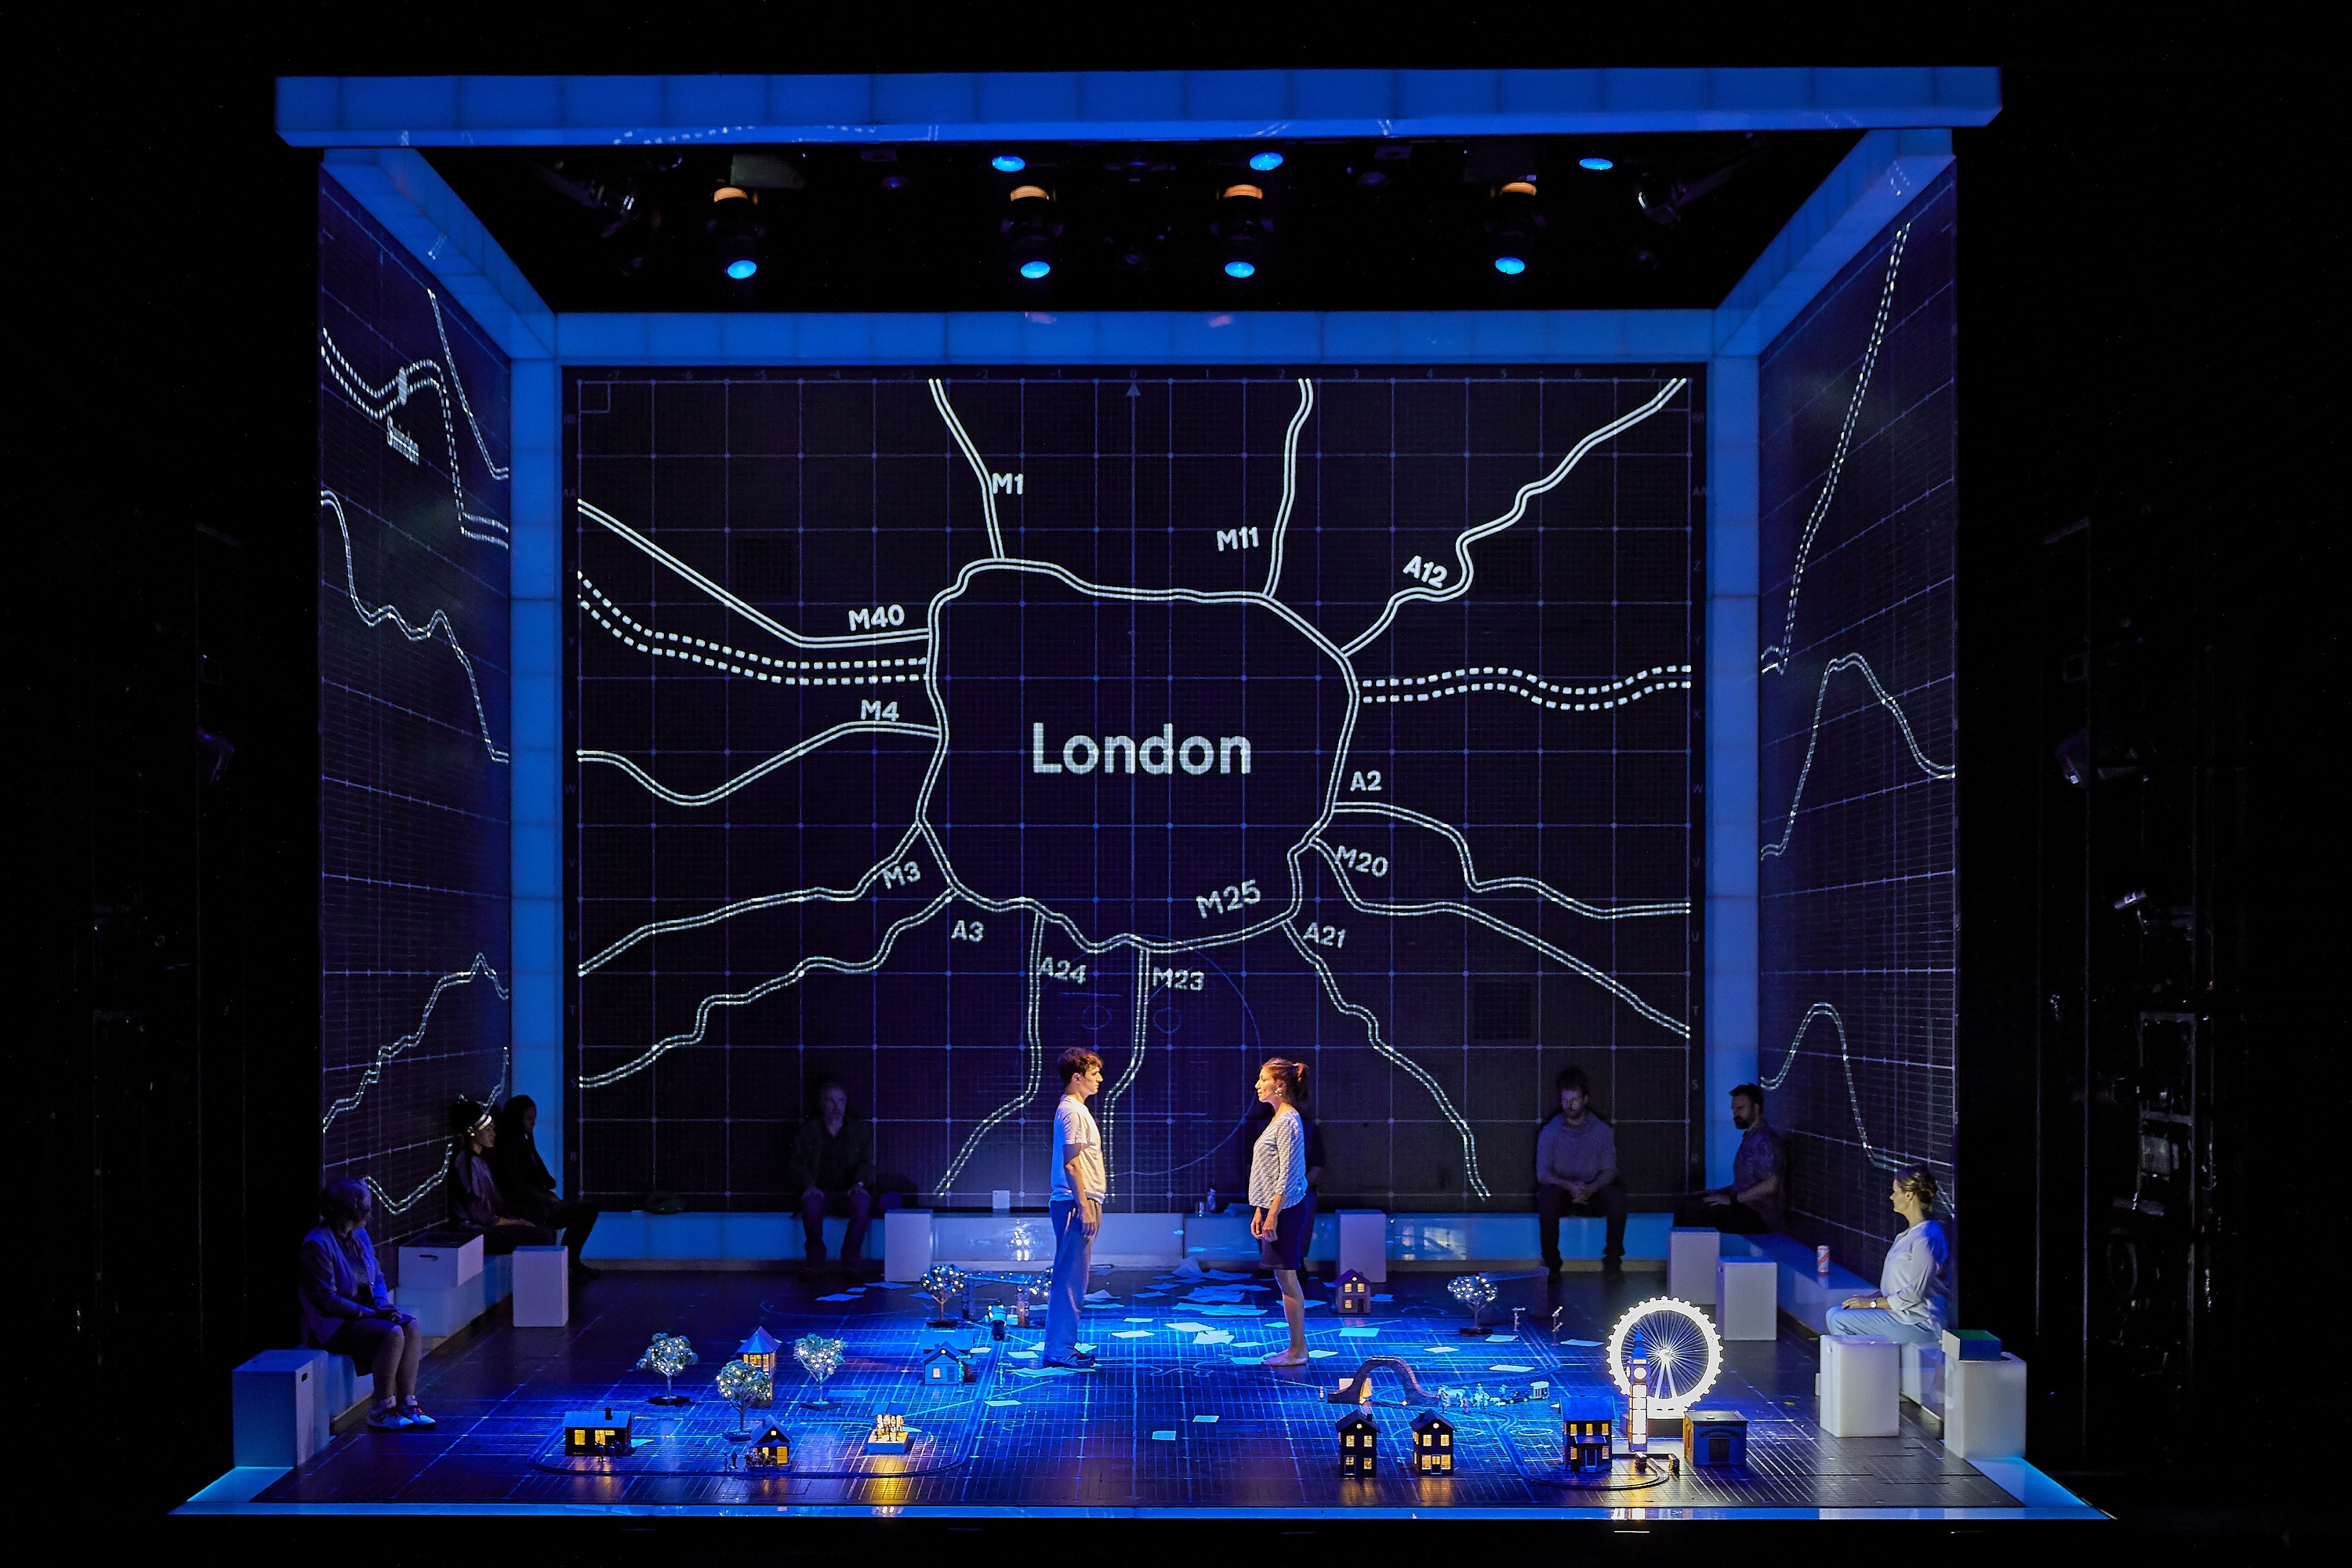 Preview: The Curious Incident of the Dog in the Night-Time